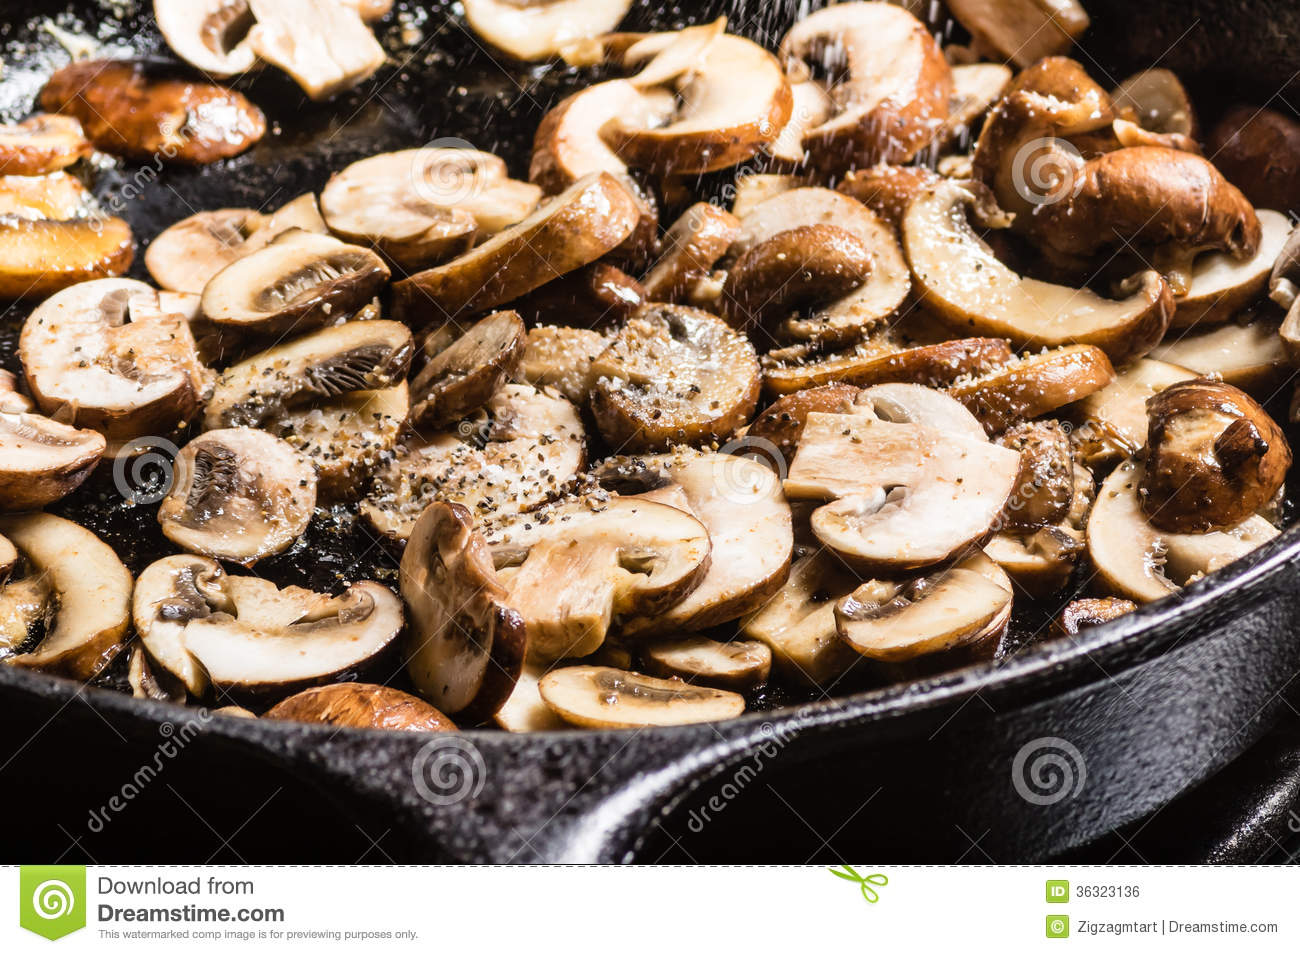 Sauteing sliced mushrooms in a cast iron skillet.